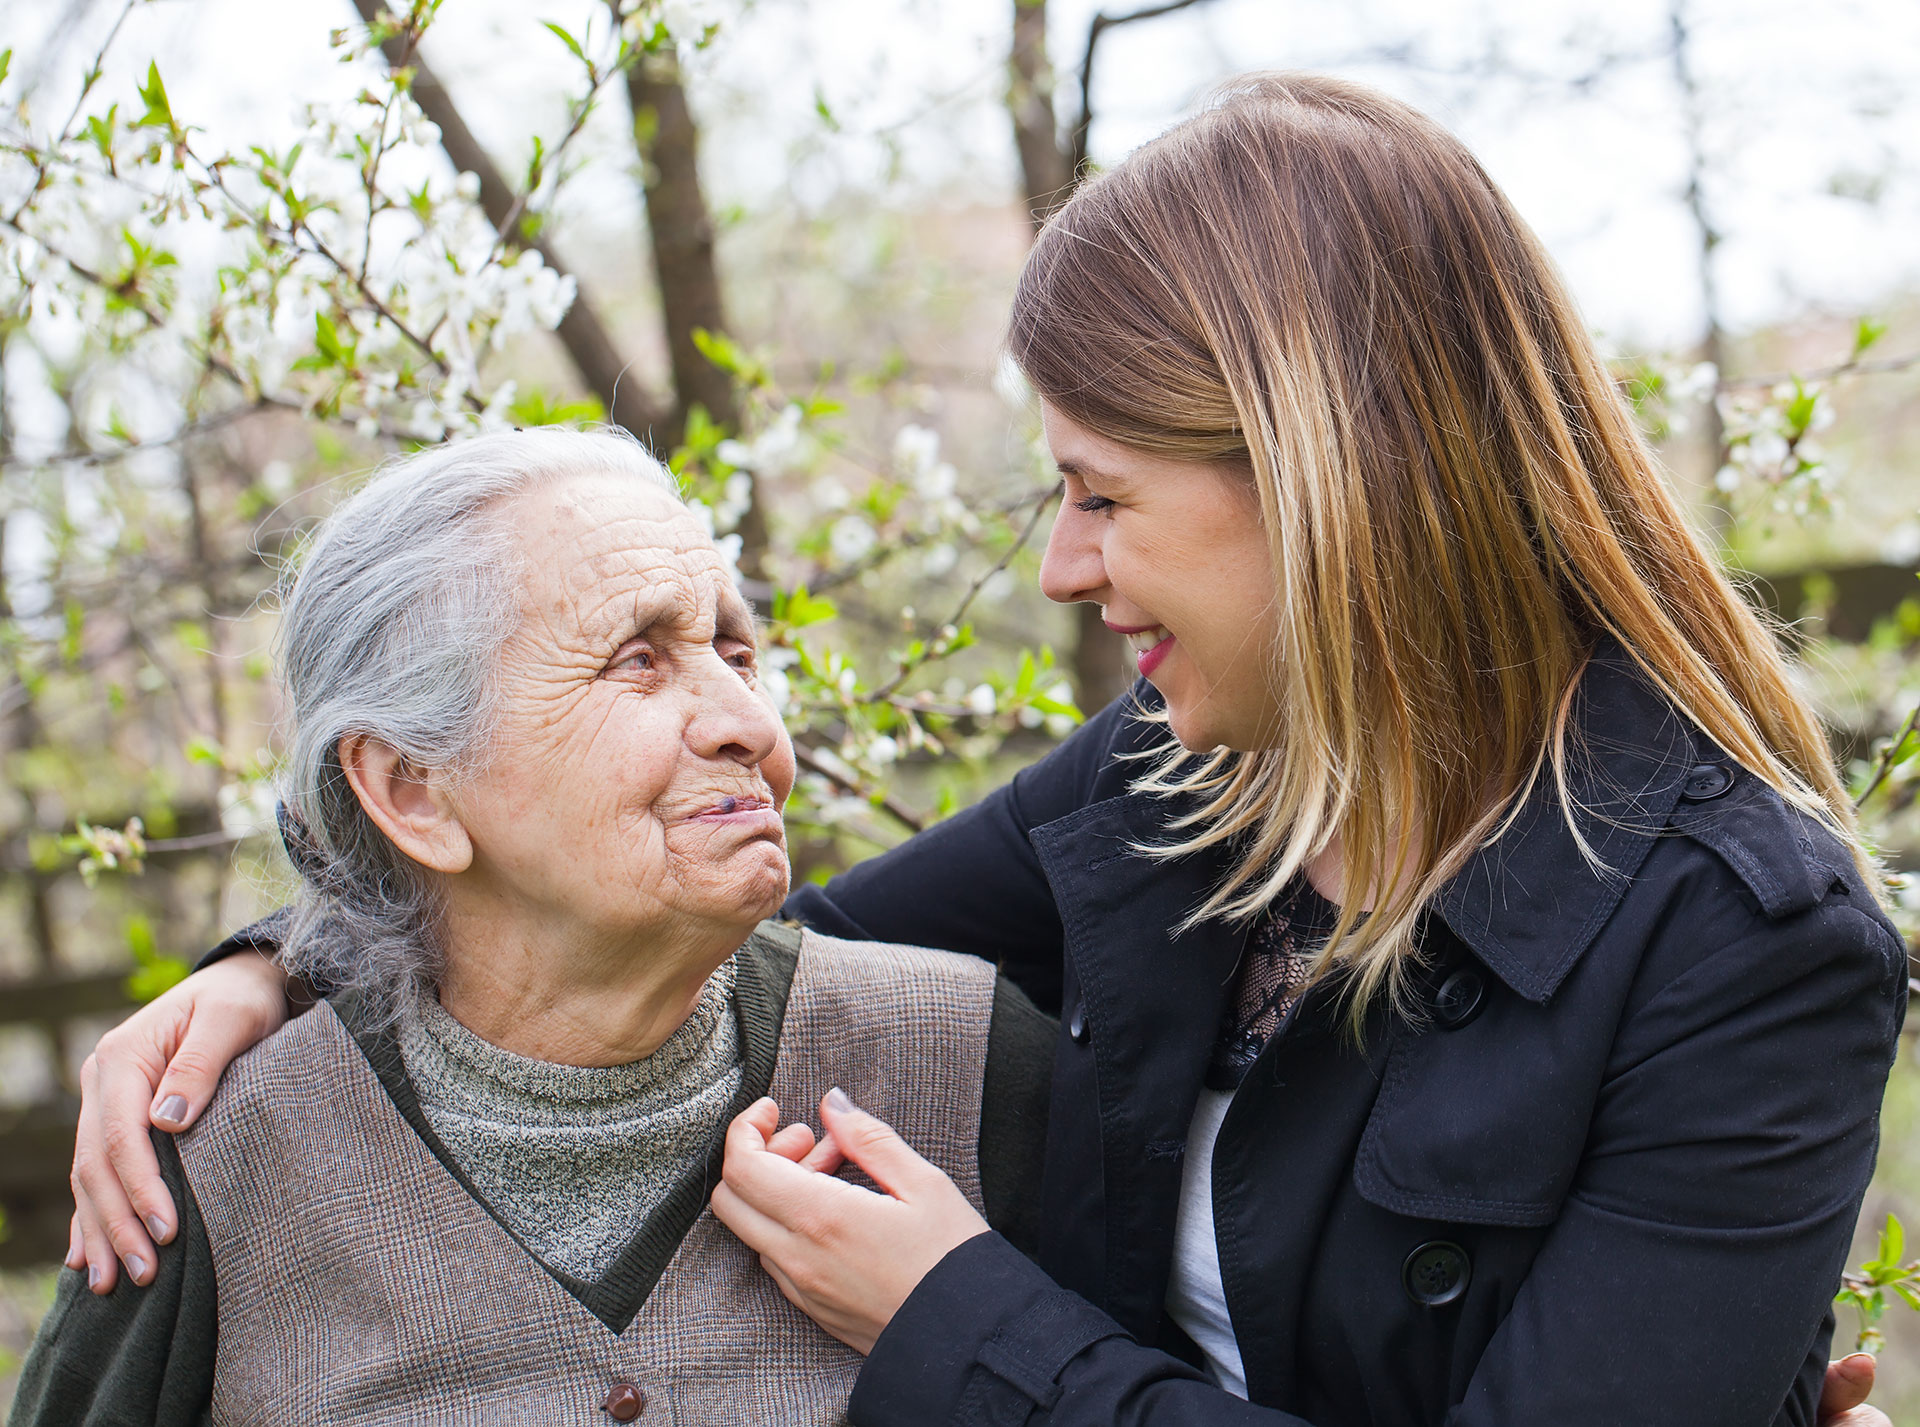 woman with arm around elderly woman outside